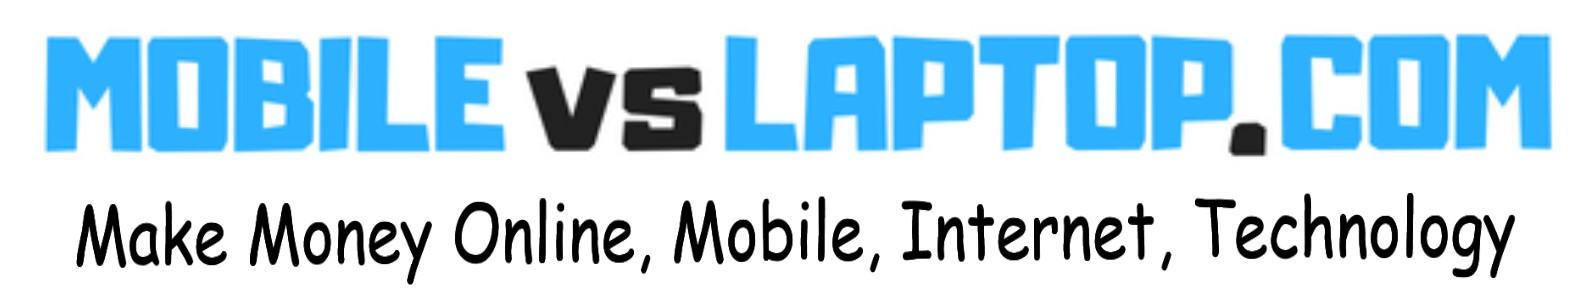 MobilevsLaptop.com - Technology Breaking News, Smartphone, Laptop, and Gadgets Review, Comparision